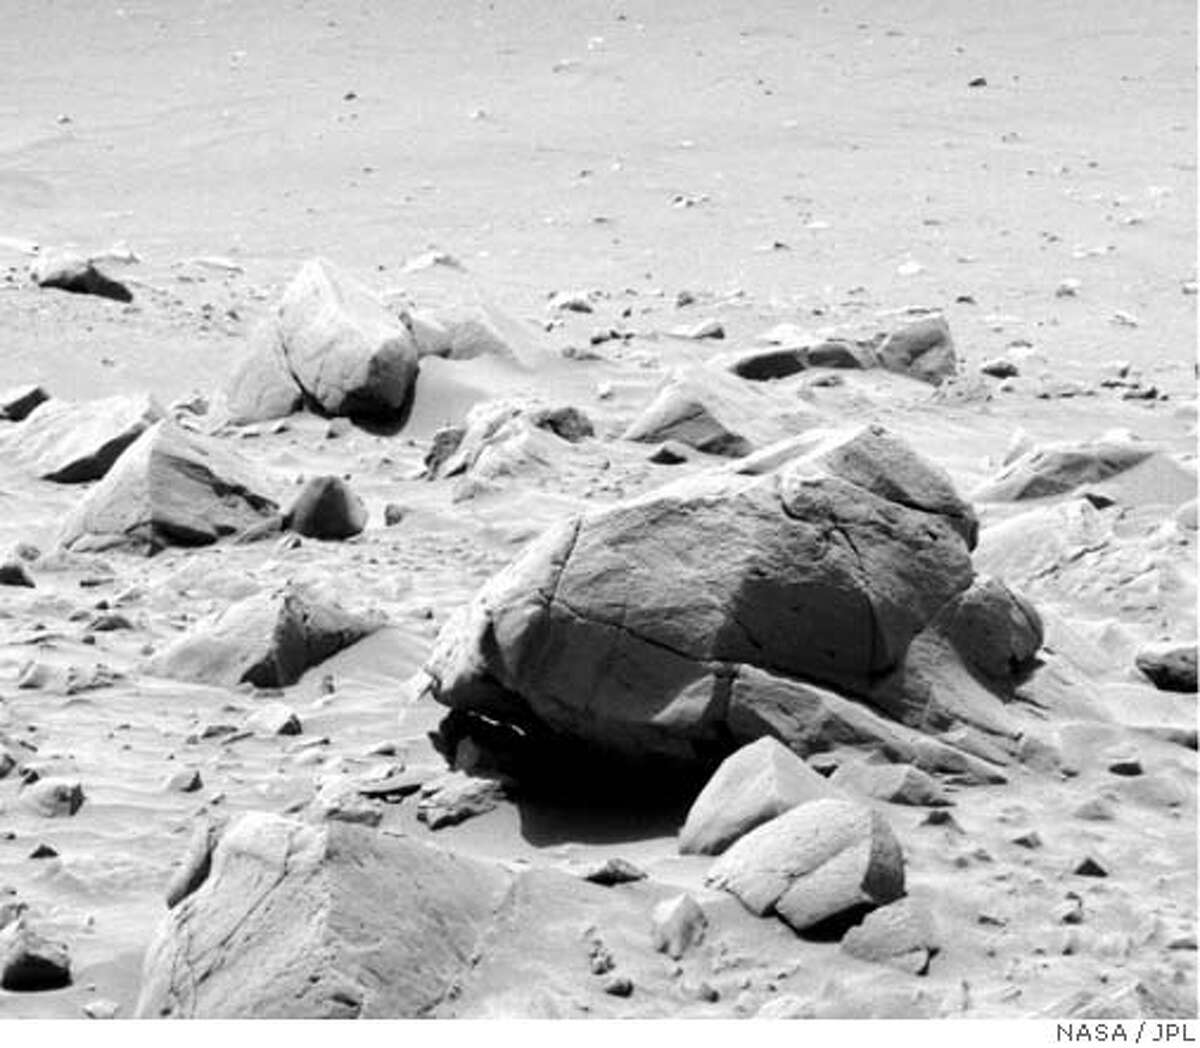 Fractured rock block near rim of Bonneville crater taken by Panoramic camera aboard the Spirit rover. Courtesy of Cornell/JPL/NASA